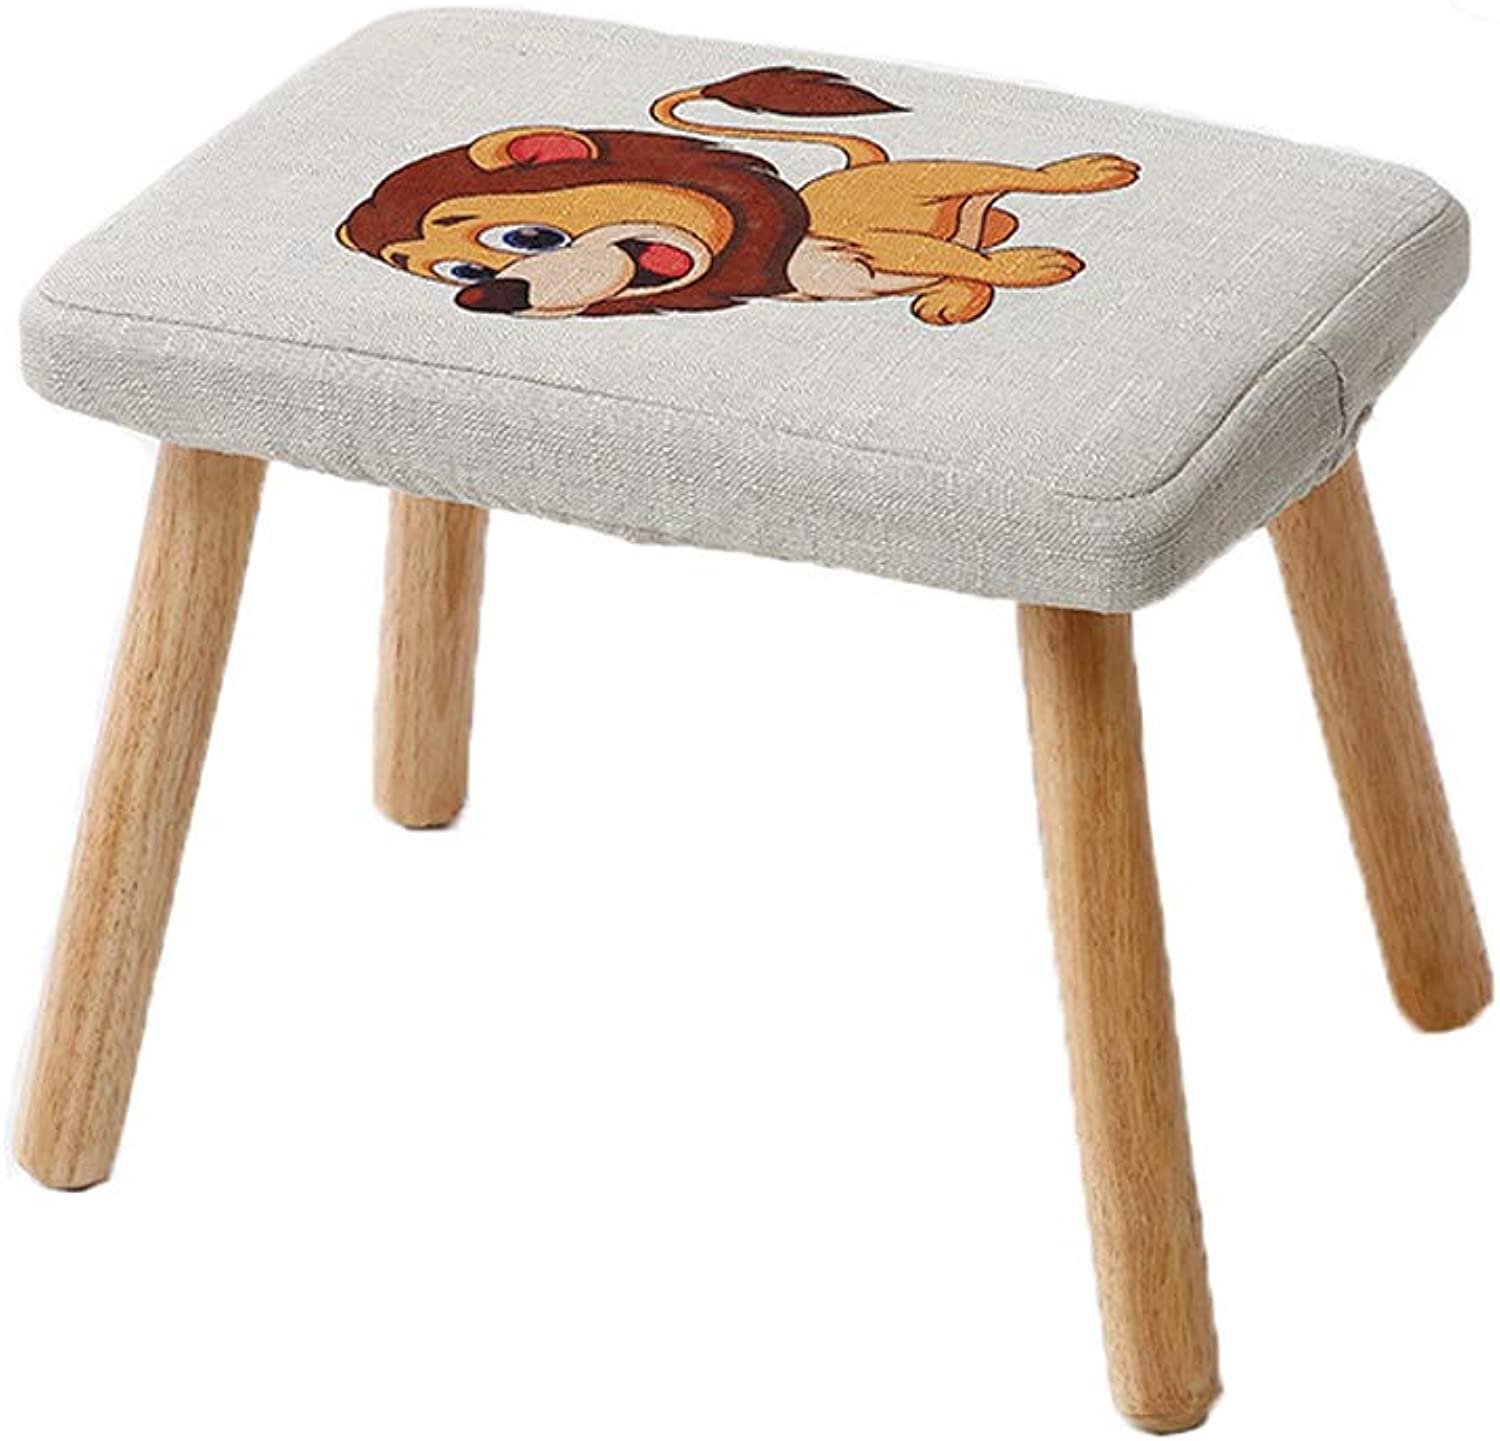 HLJ Simple Home Adult Change shoes Bench Fashion Sofa Stool Comfortable Solid Wood Cartoon Stool Creative Small Bench